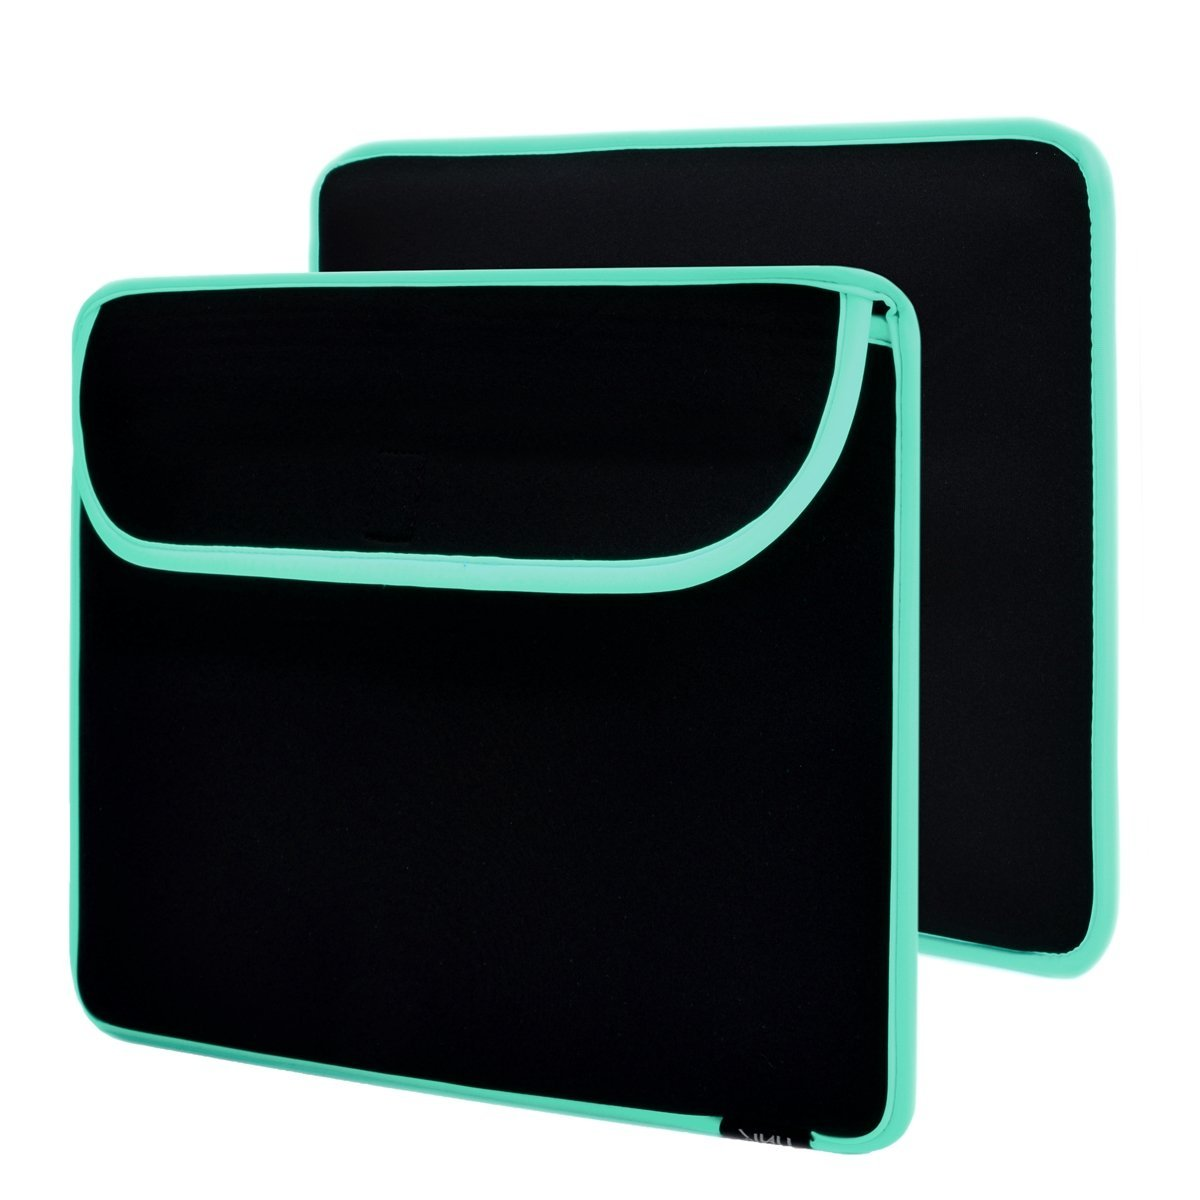 "Unik Case Hot Edge Mint Green on Black Neoprene Laptop Sleeve Bag Case Cover for All 13"" 13-Inch Laptop Notebook / Macbook Pro / Macbook Unibody / Macbook Air / Ultrabook / Chromebook"